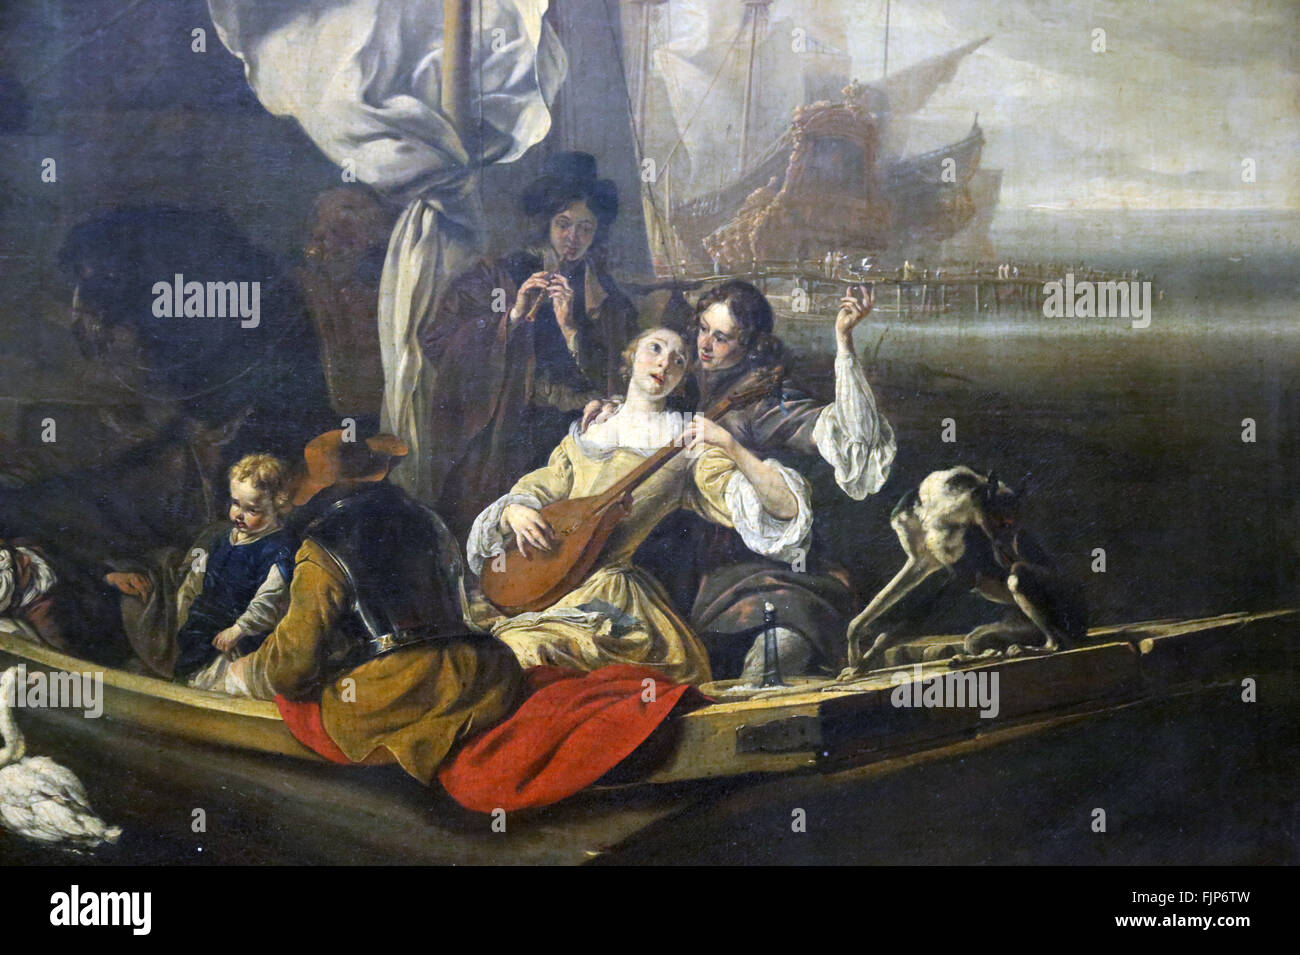 Jan Weenix (1640-1719). Dutch painter. Fantasy character in a boat, 1666. Louvre Museum. Paris. France. - Stock Image